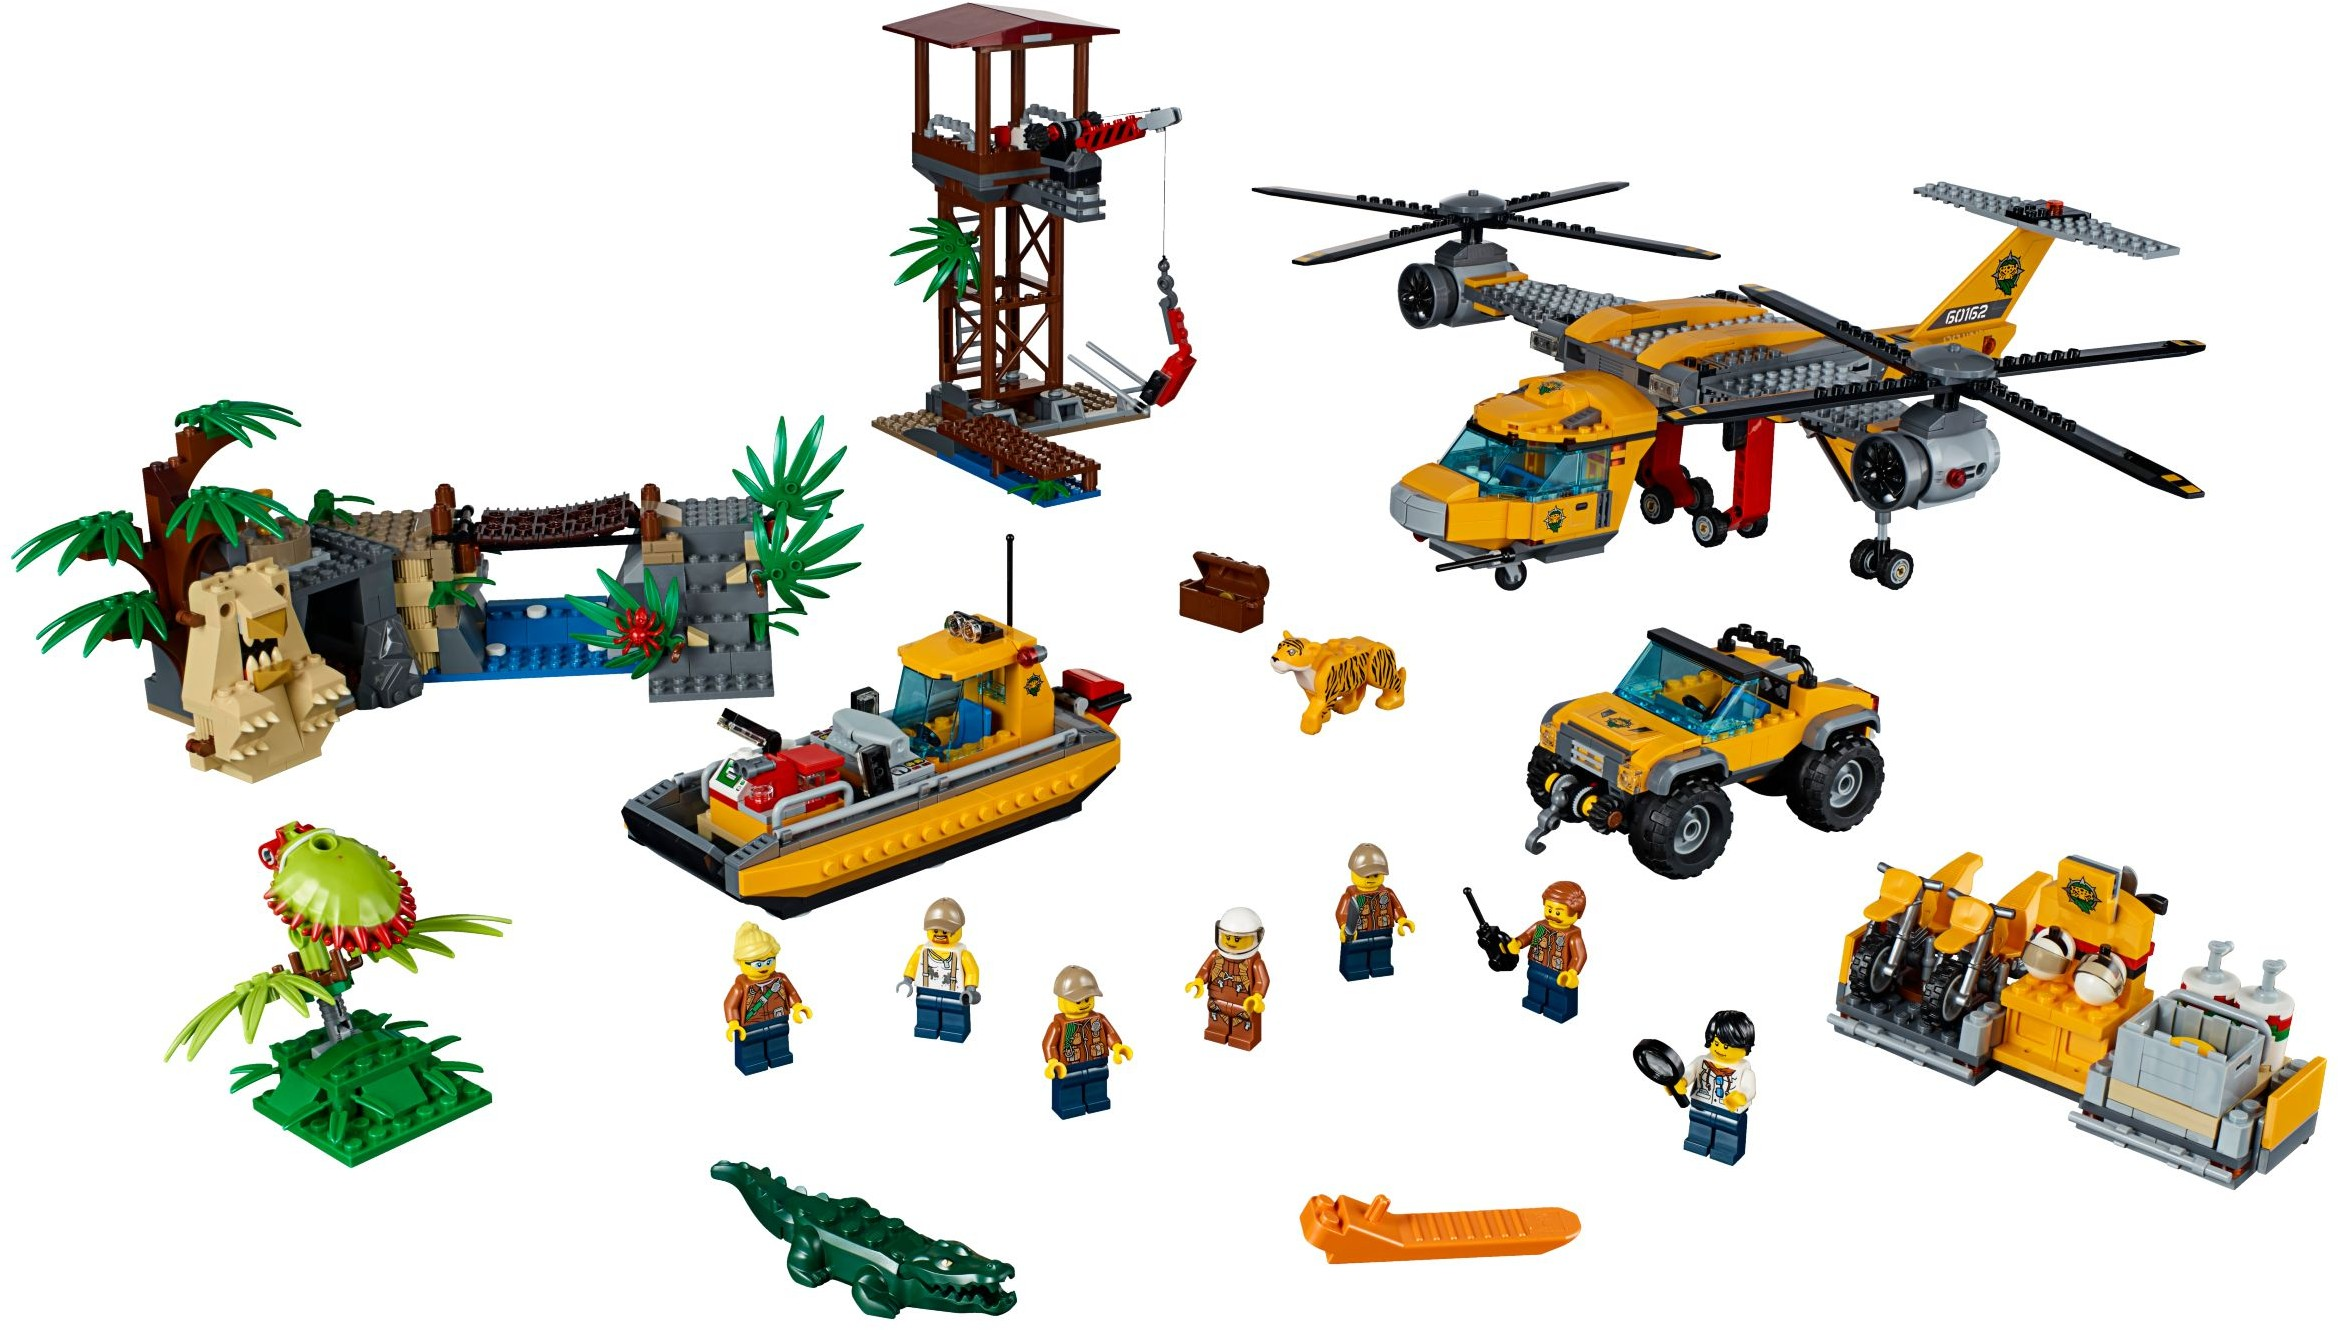 Tagged Crane City Brickset Lego Set Guide And Database